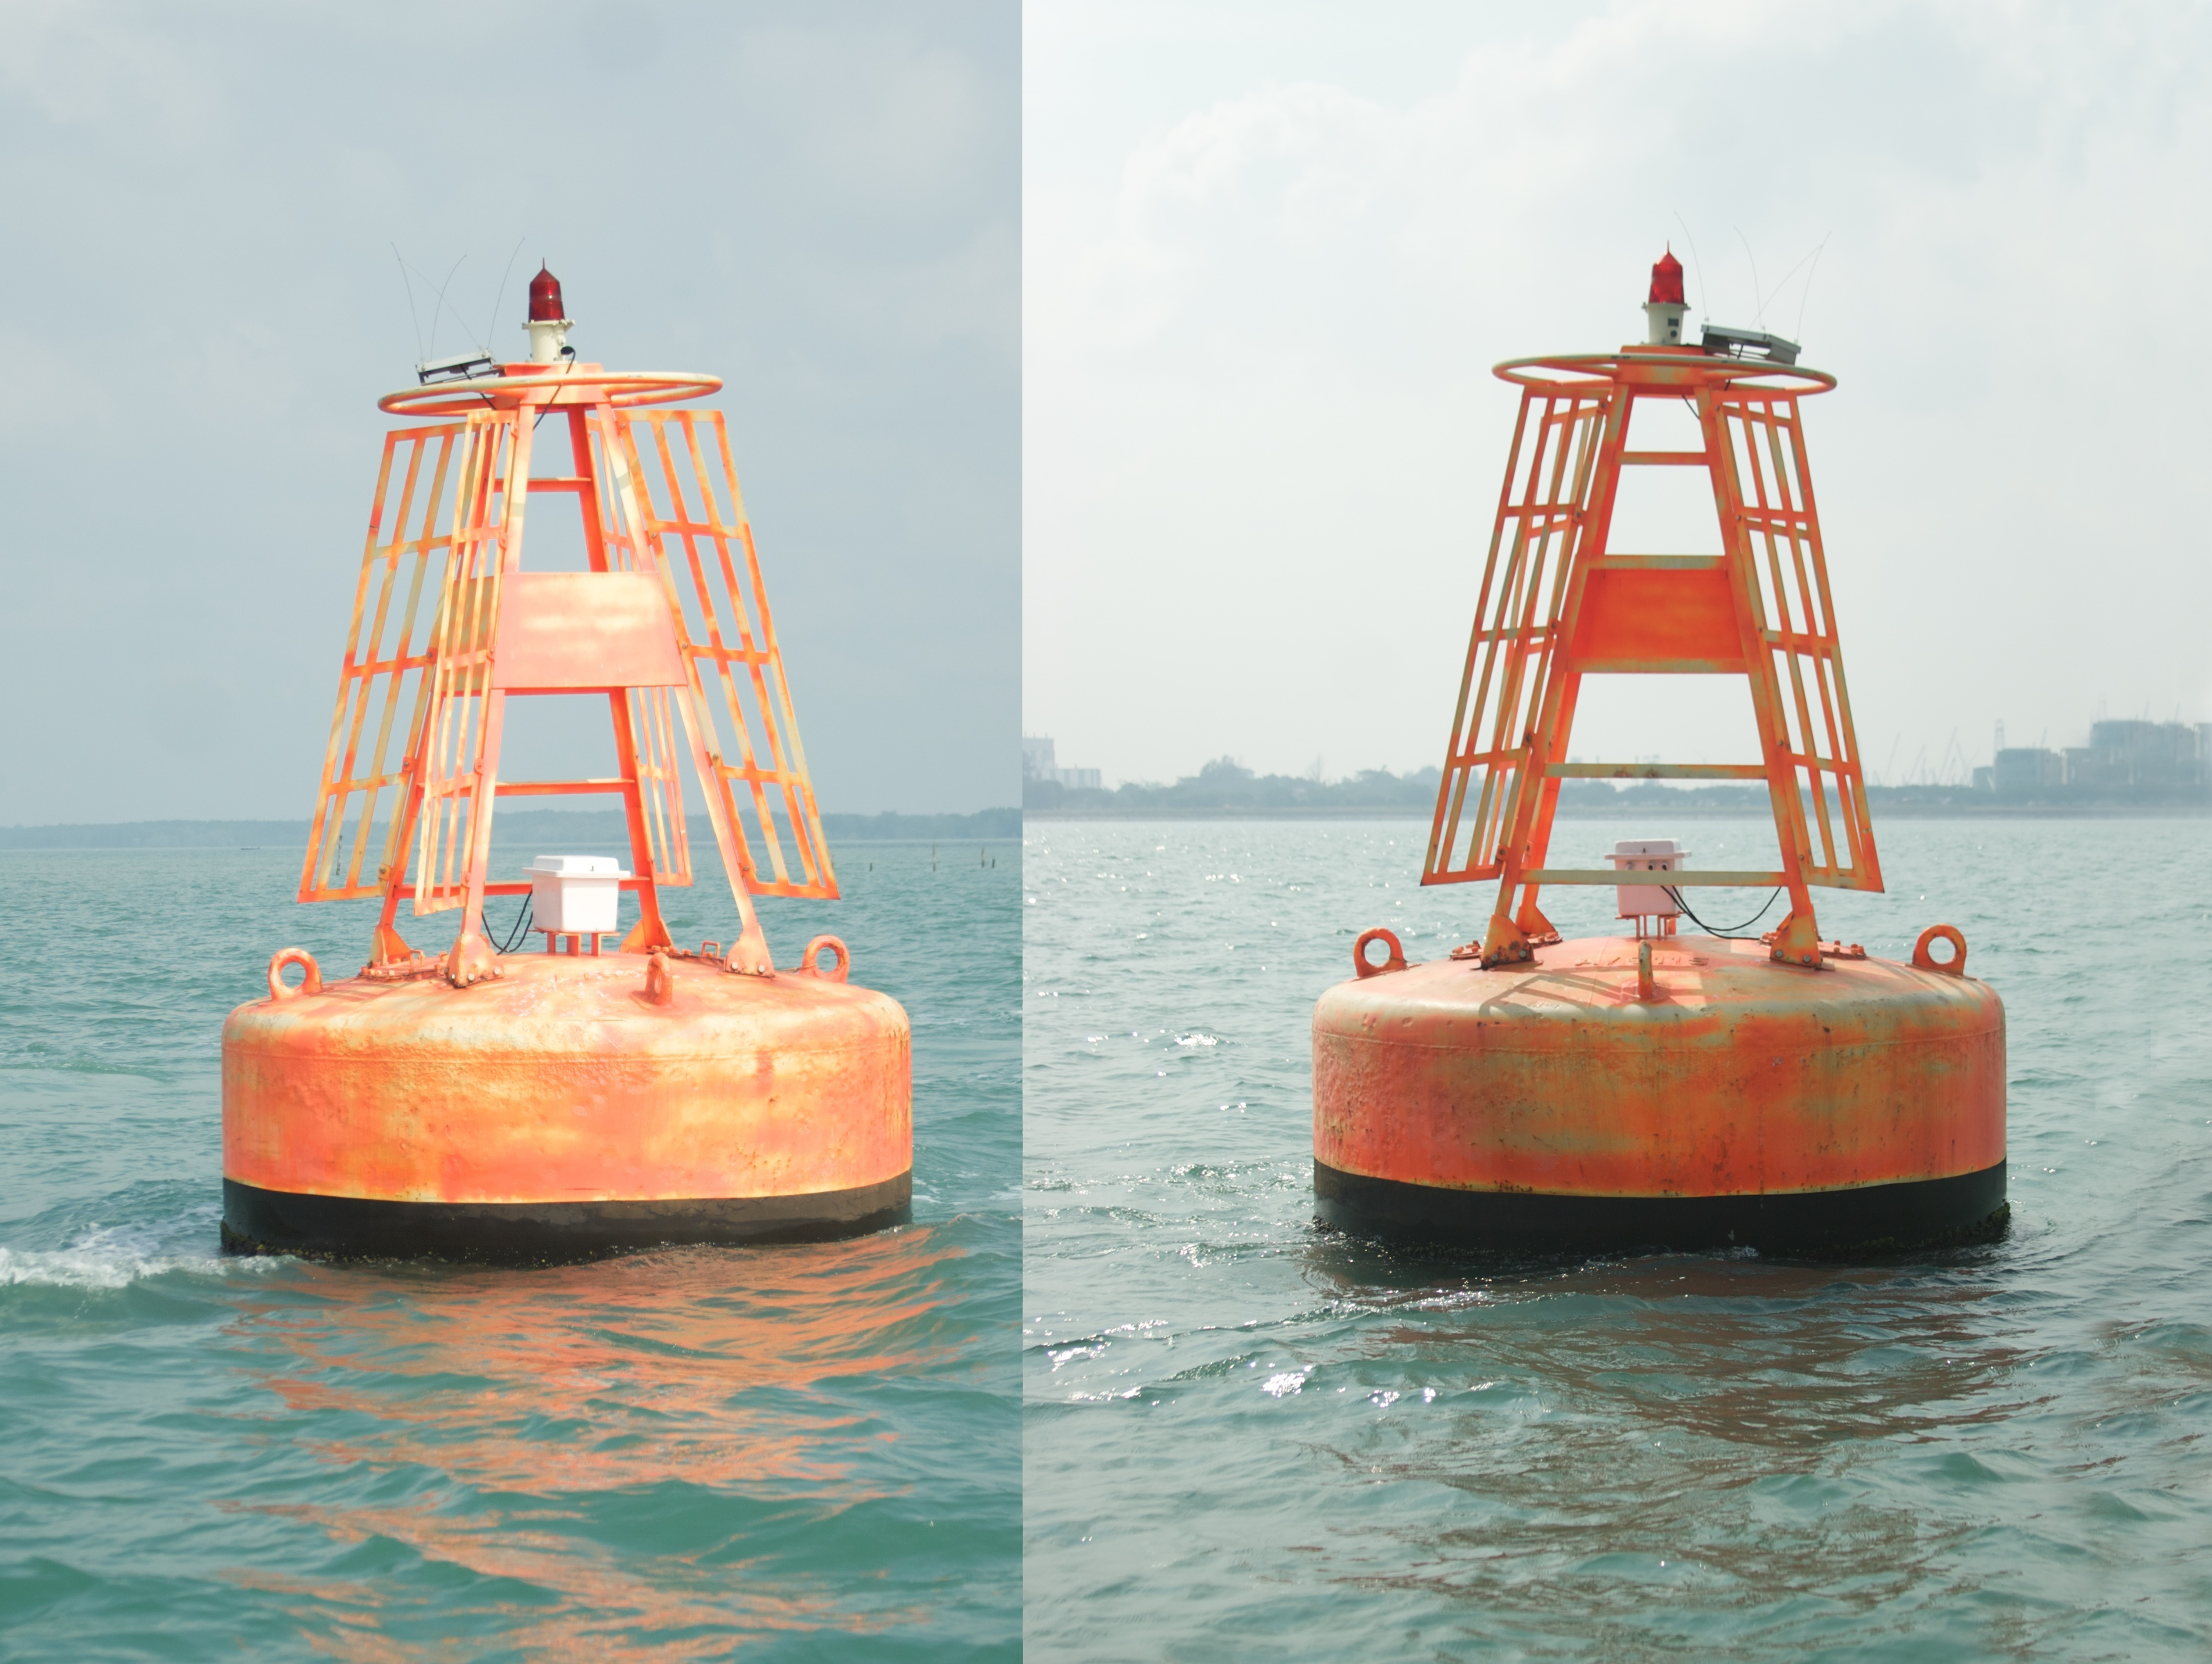 UNAMED BUOY